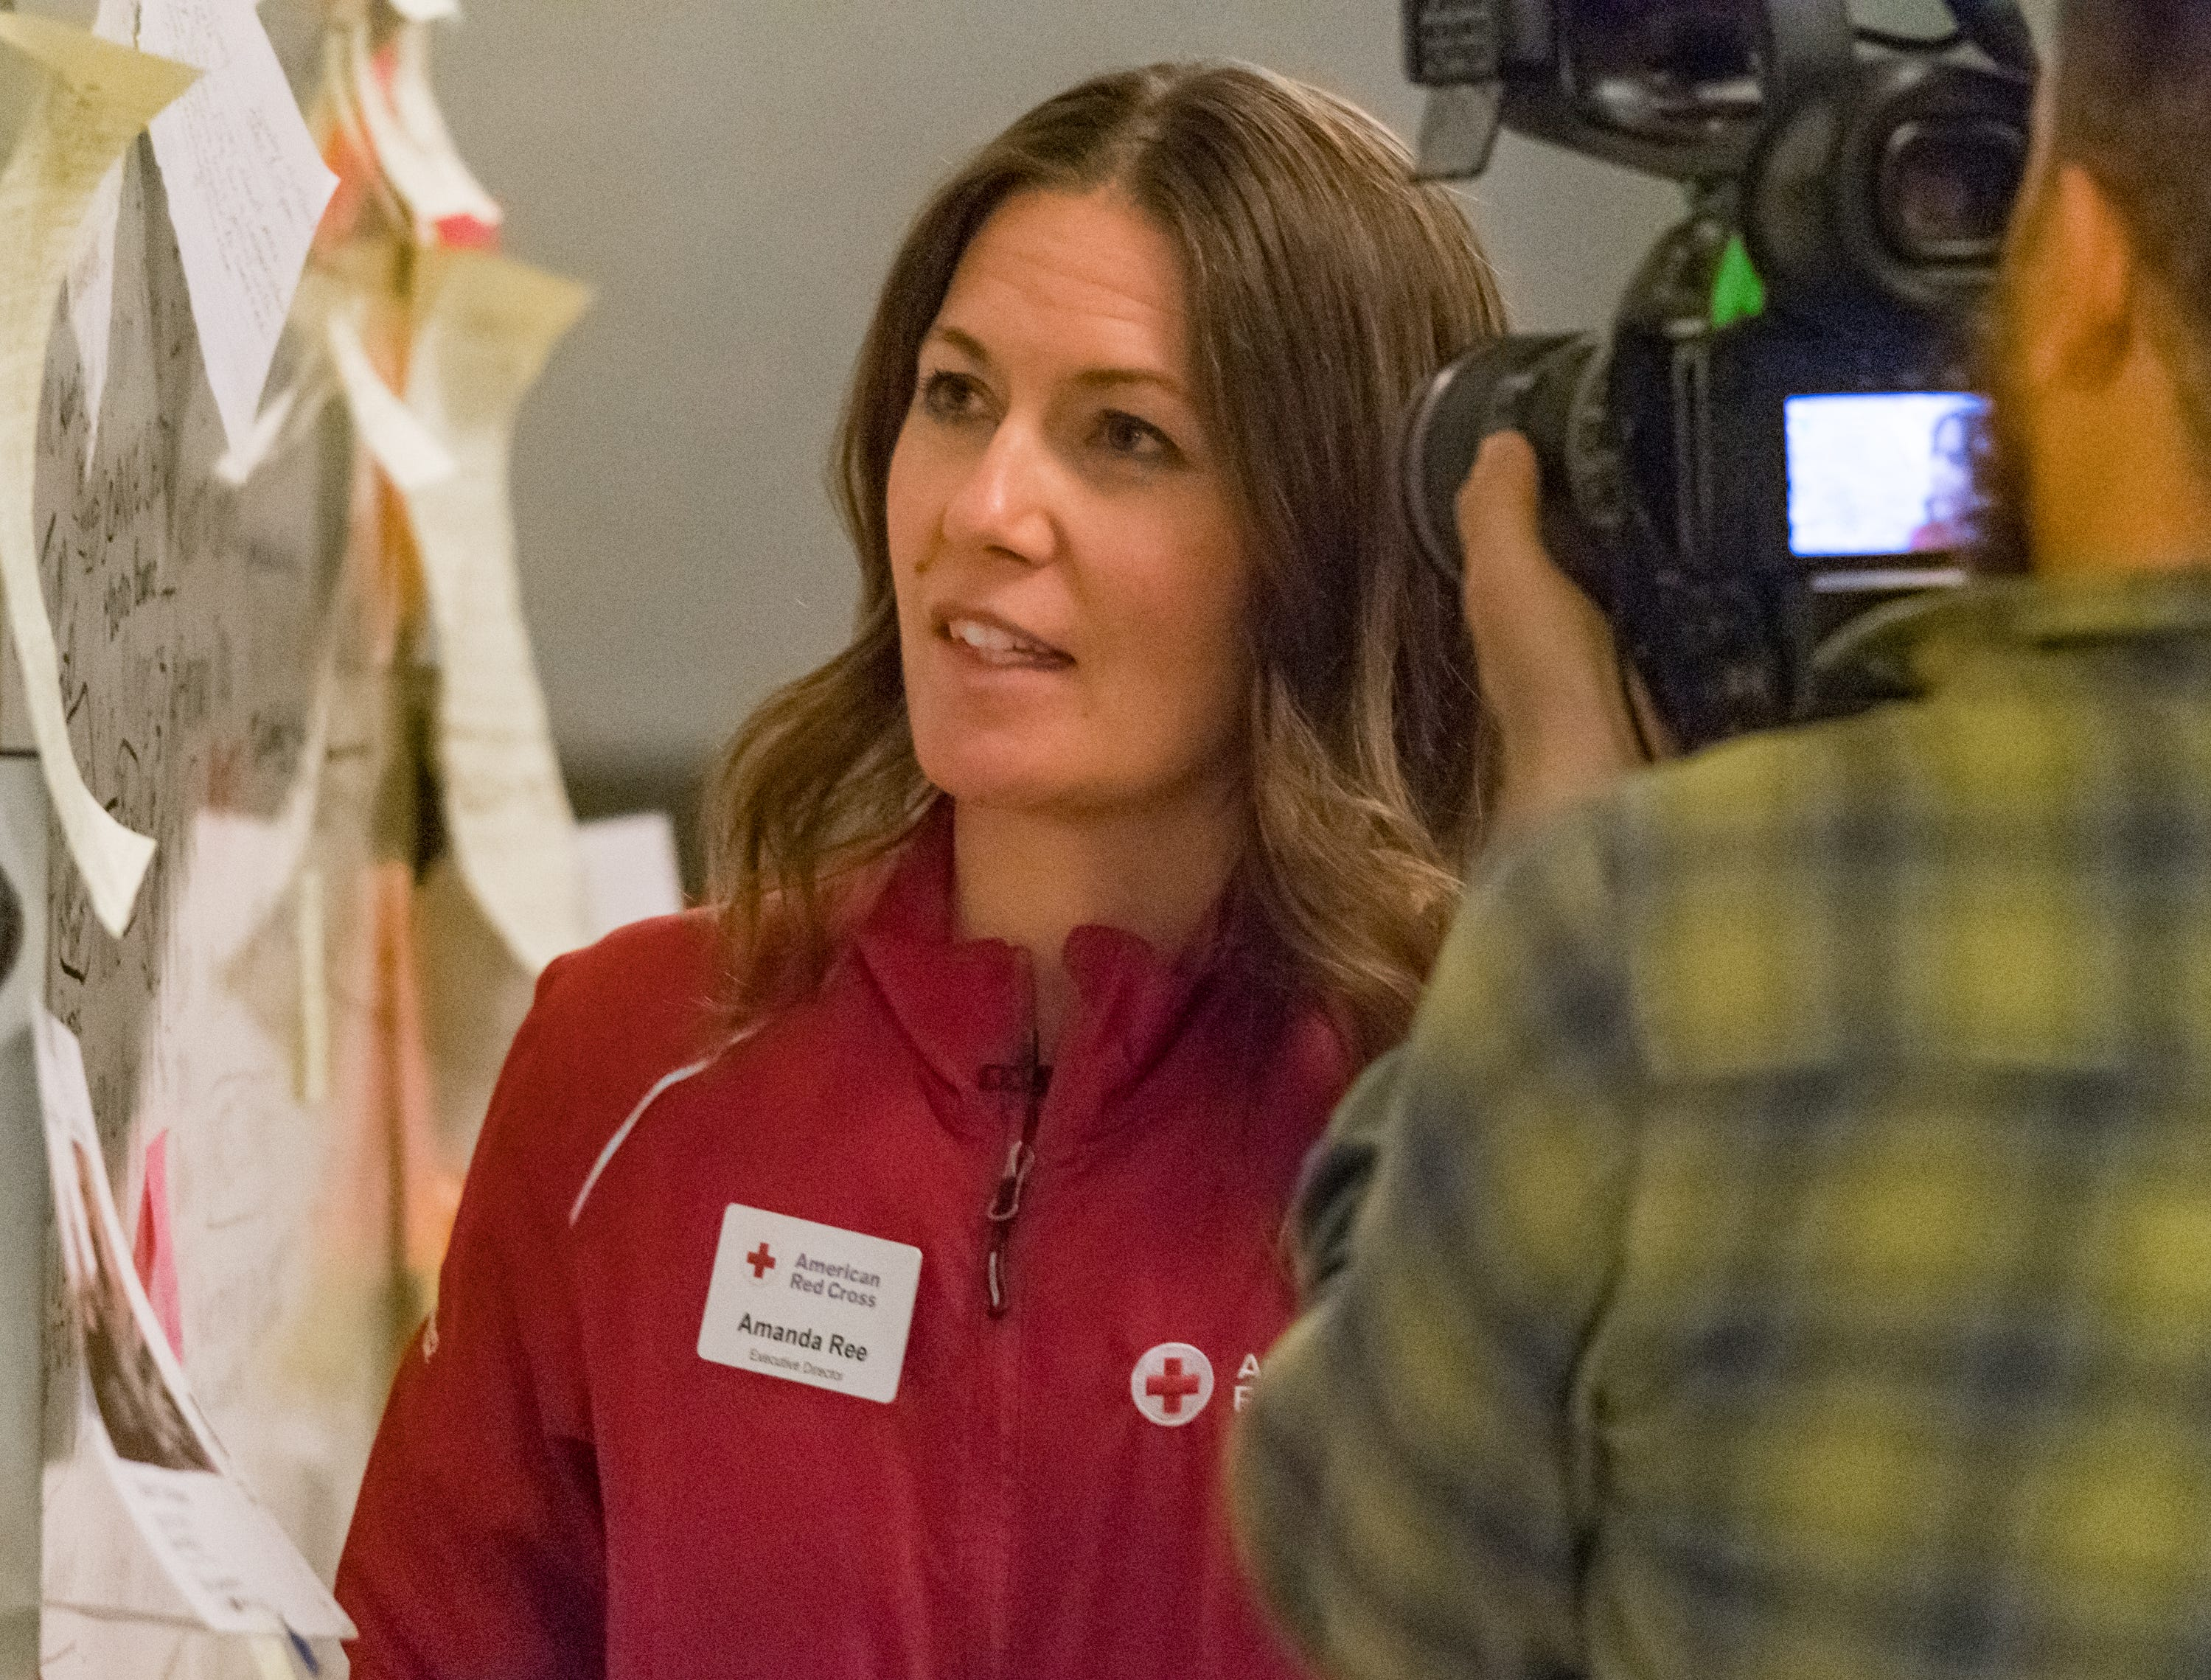 Amanda Ree - Red Cross Executive Director- Gold Country Region.  Sunday, Nov. 11, 2018.